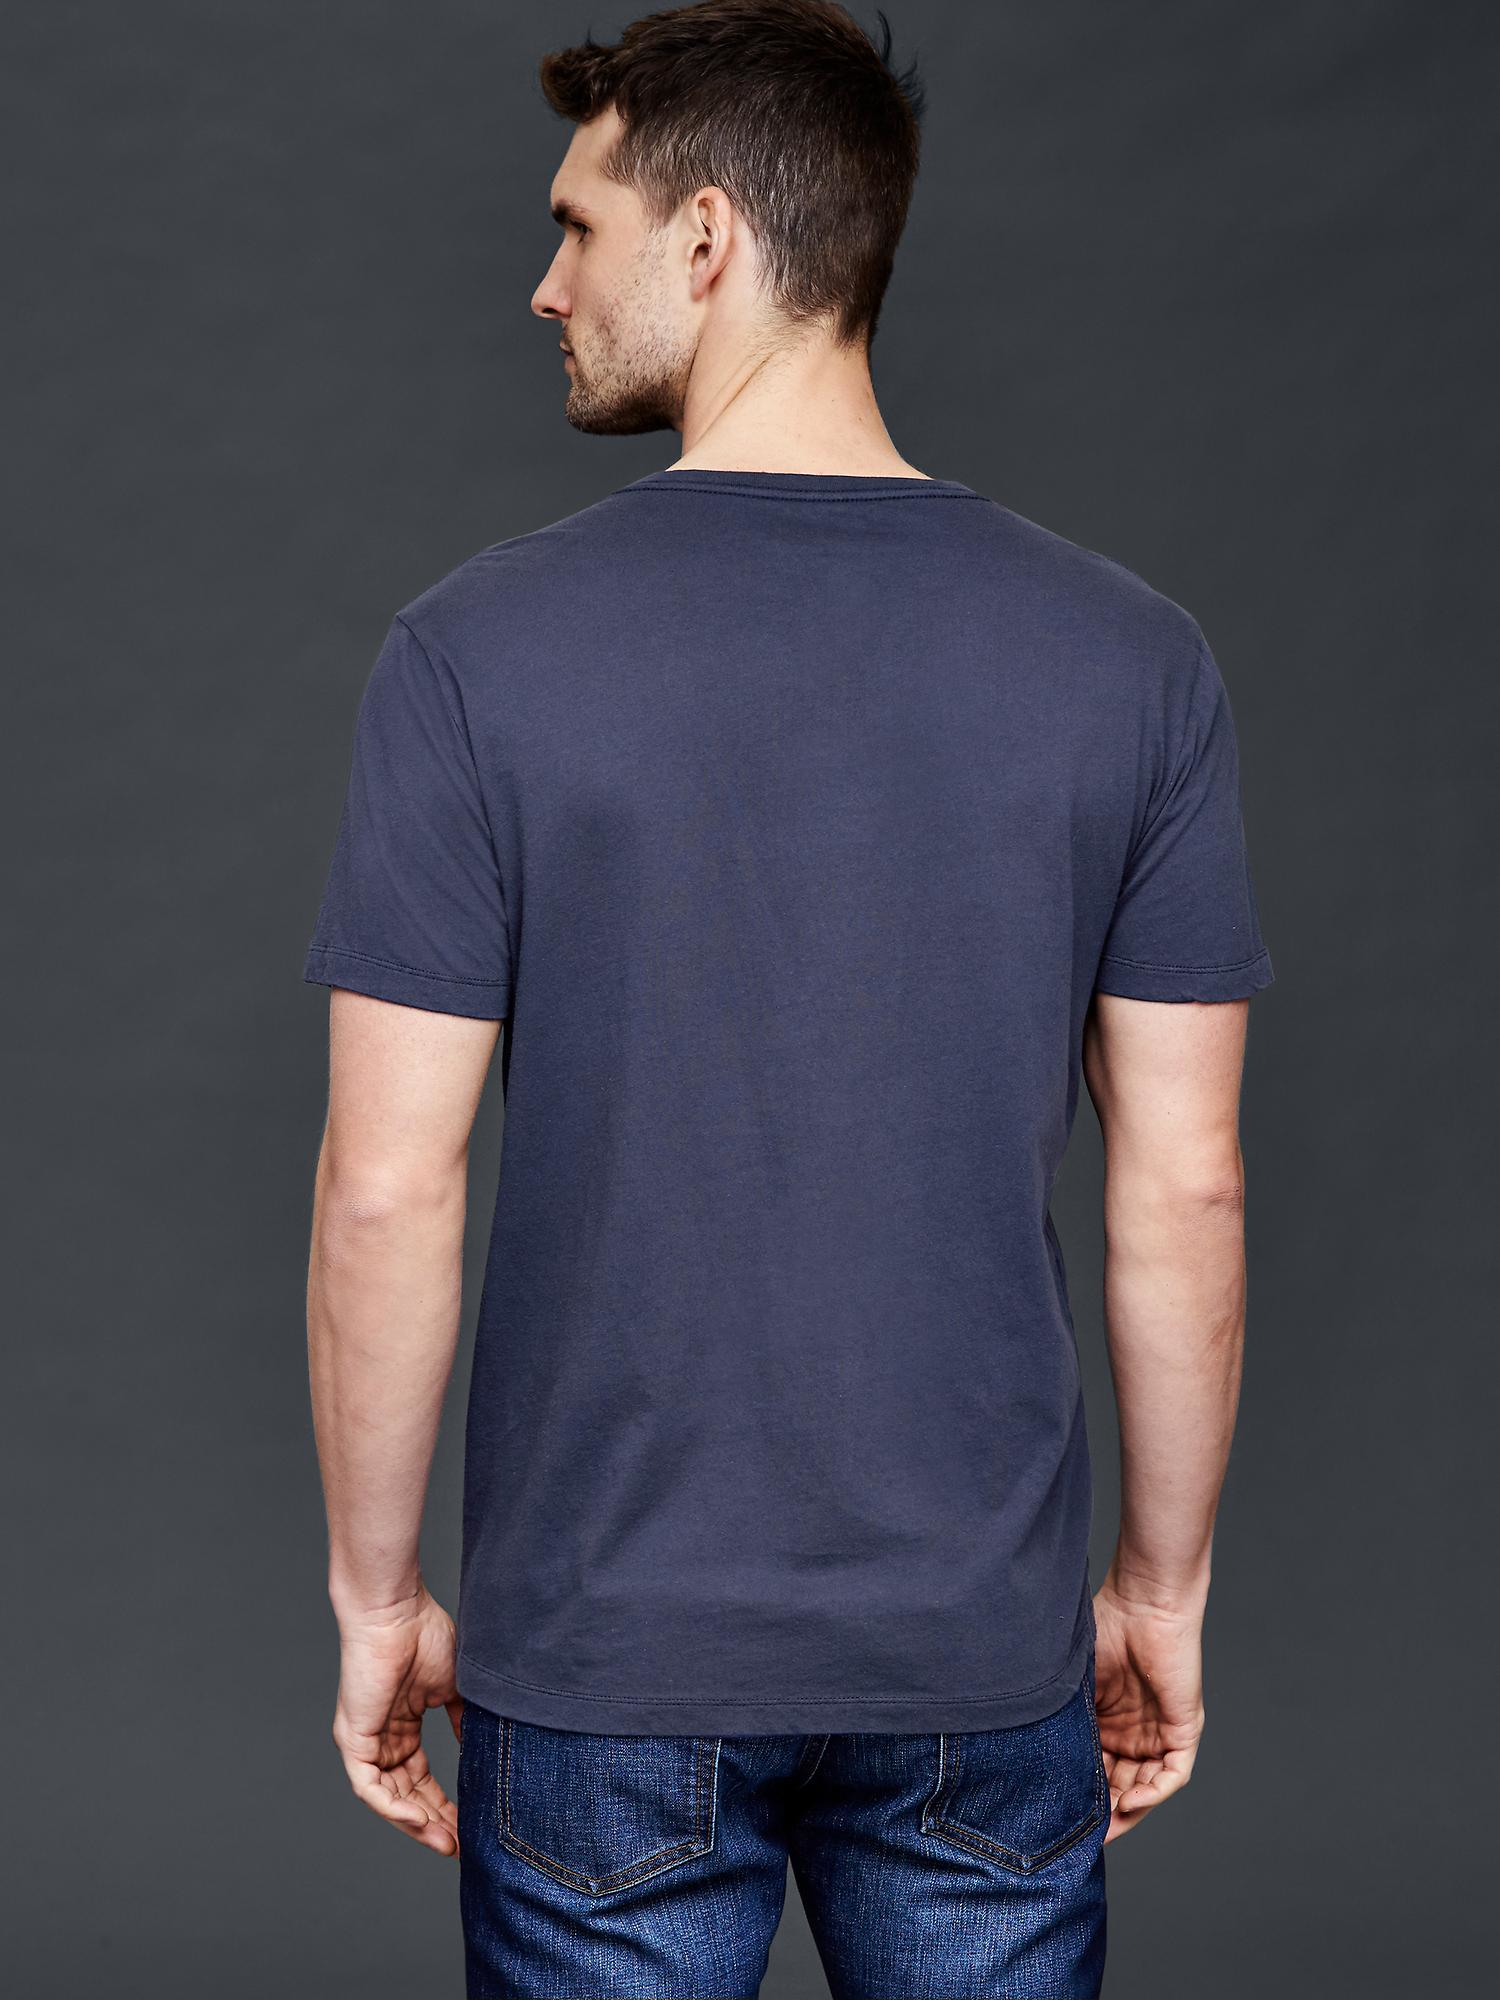 Gap Vintage Wash V Neck T Shirt In Blue For Men Dark